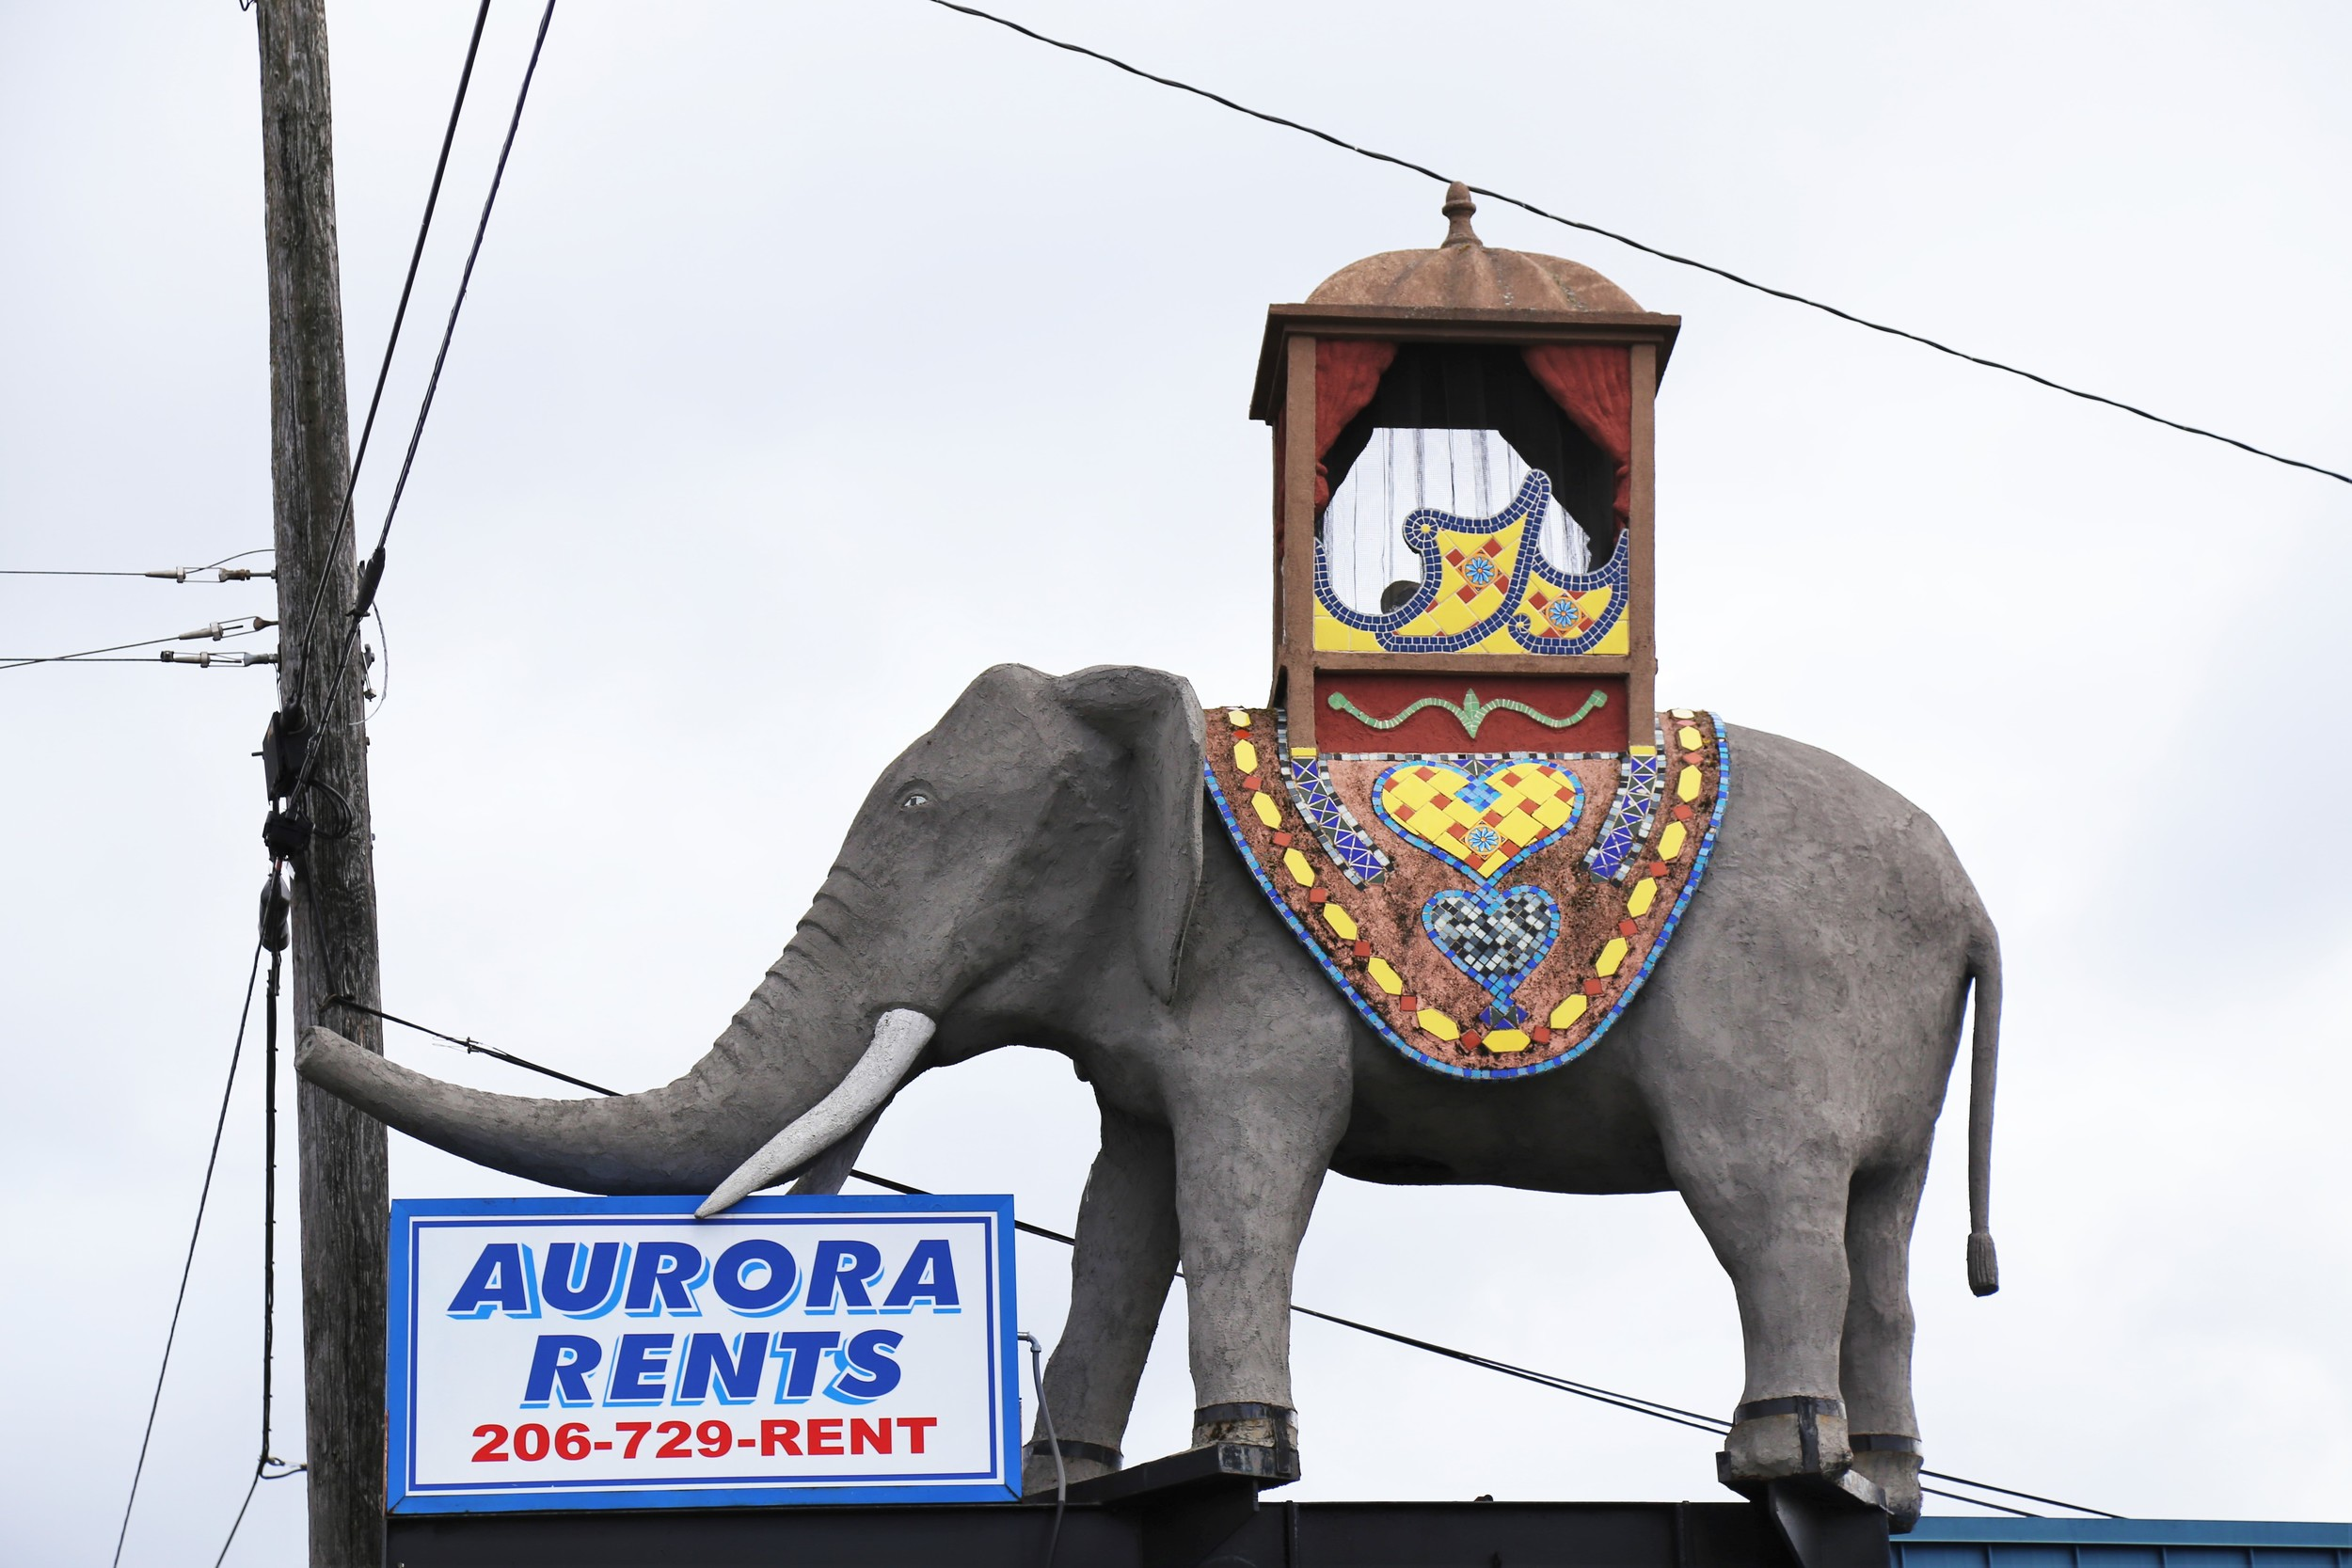 The crazy Aurora elephant